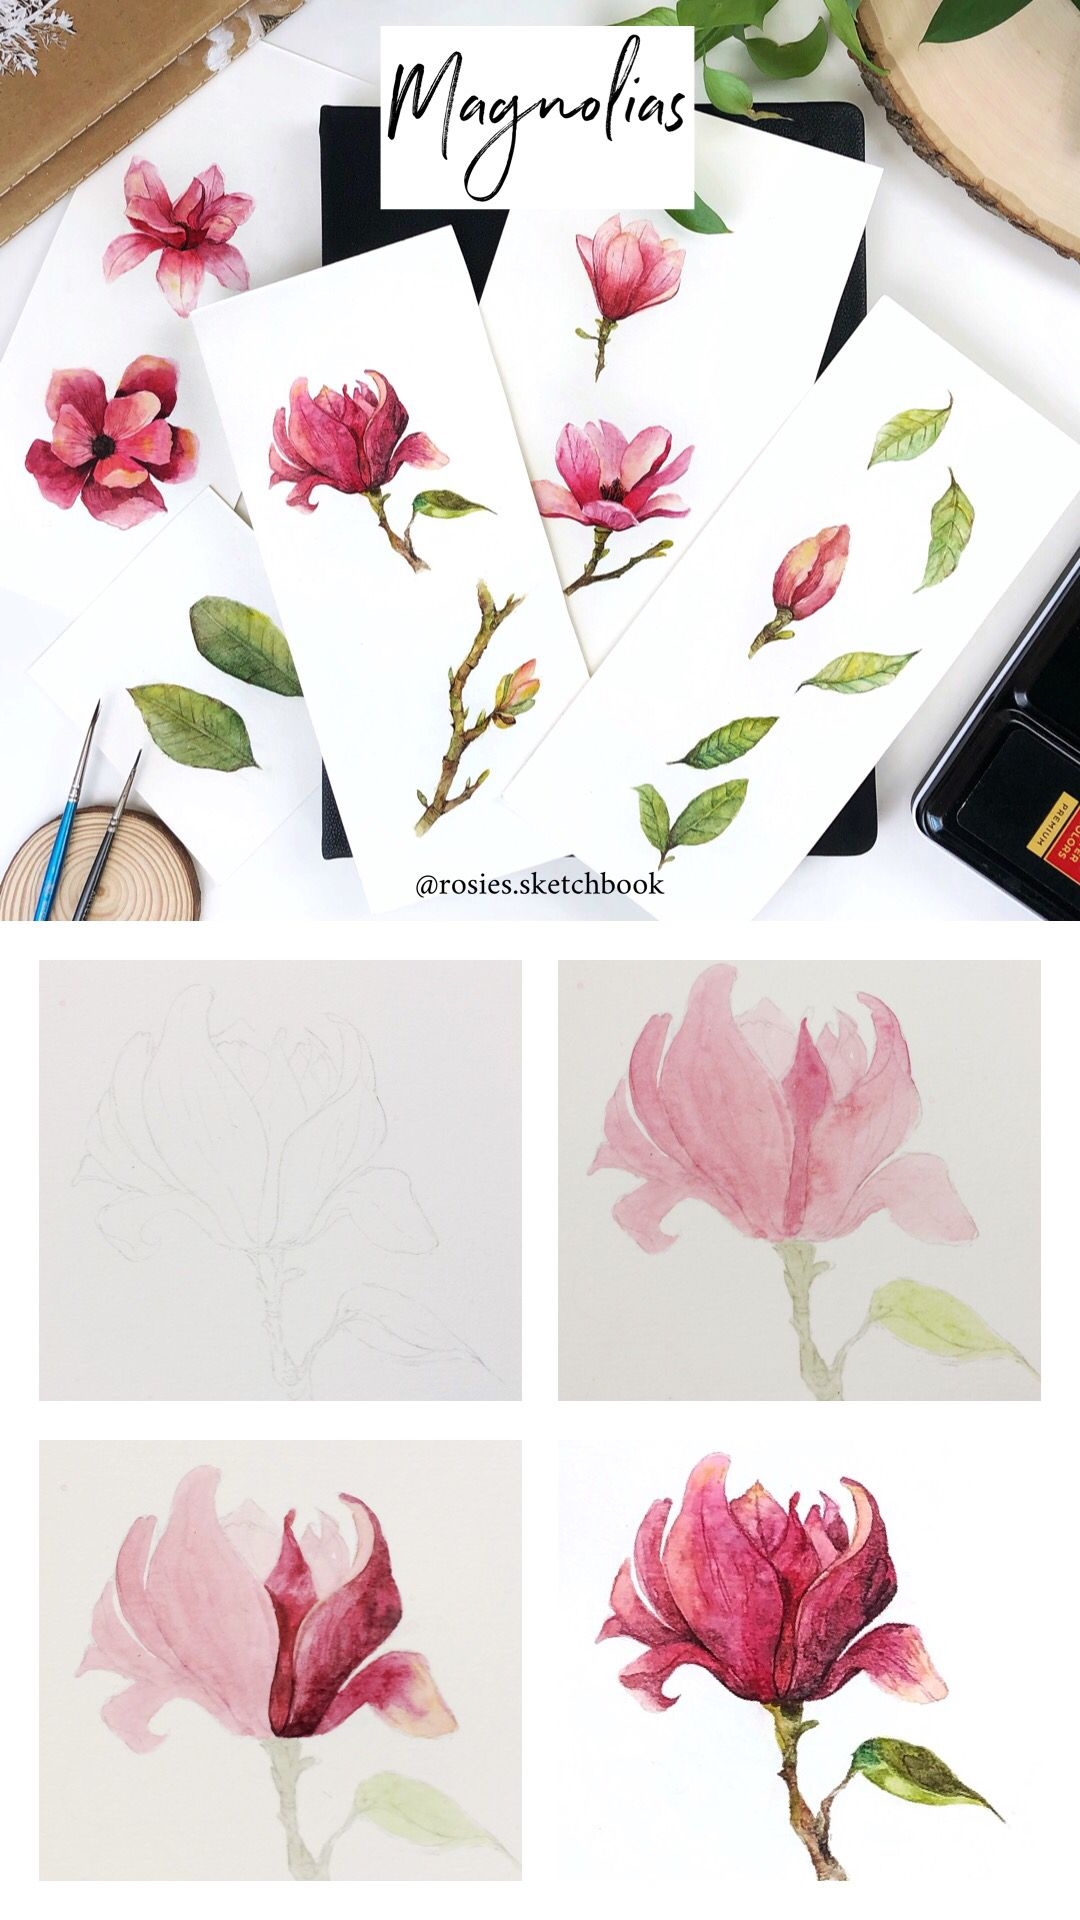 Mini Magnolia Flower Tutorial With Step By Step Process Photos Tutorial Art Artist Painting Watercolor Flowers Tutorial Botanical Painting Flower Painting